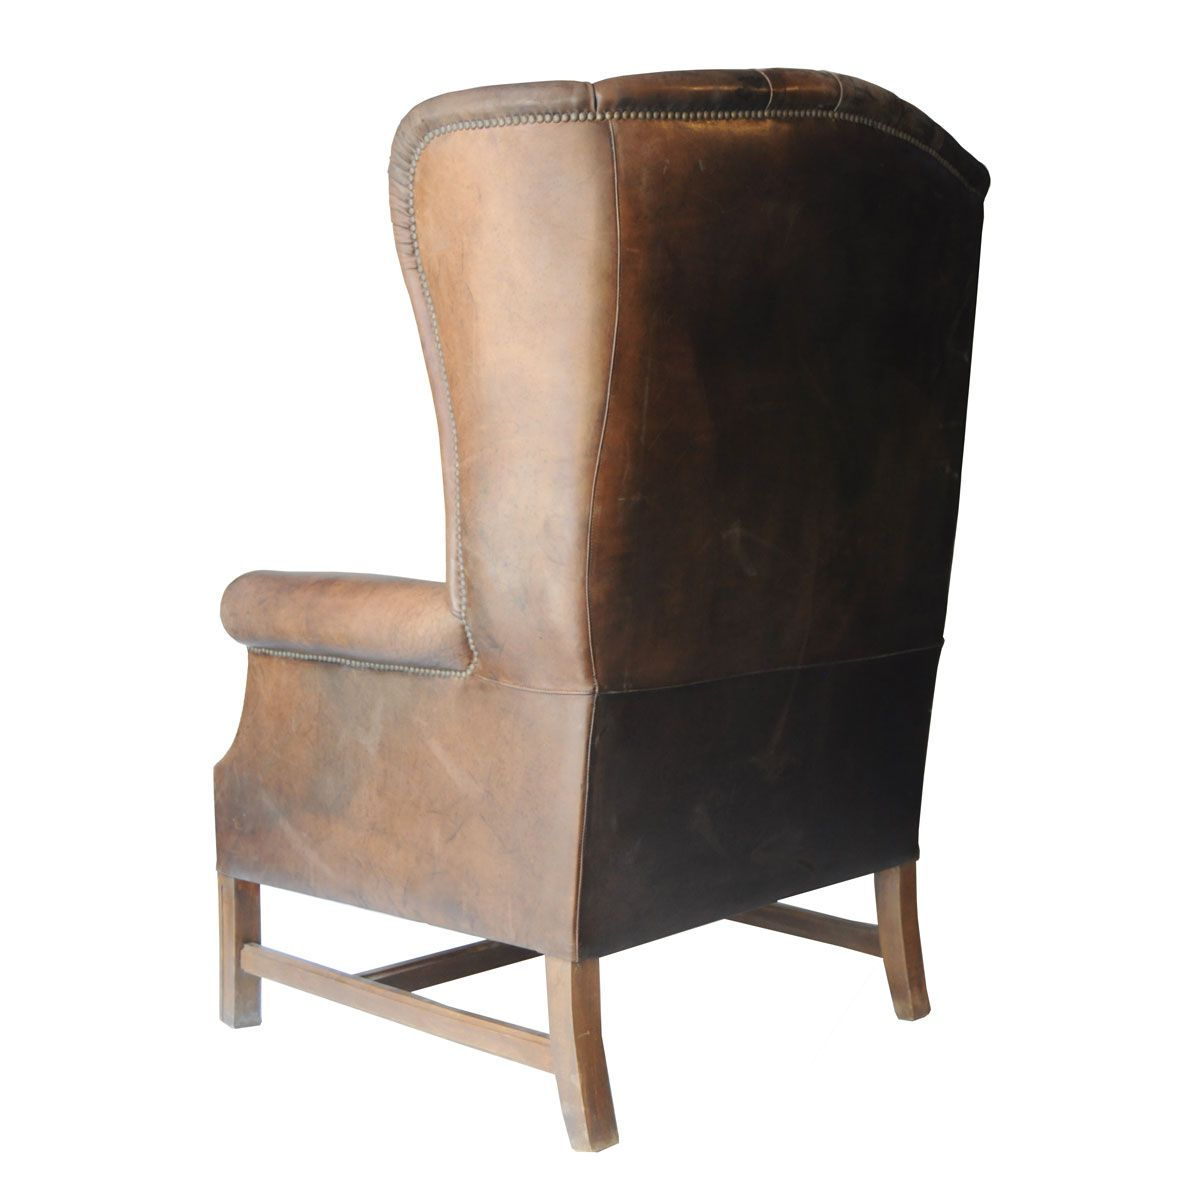 English armchairs 1940 set of 2 for sale at pamono for 2 armchairs for sale